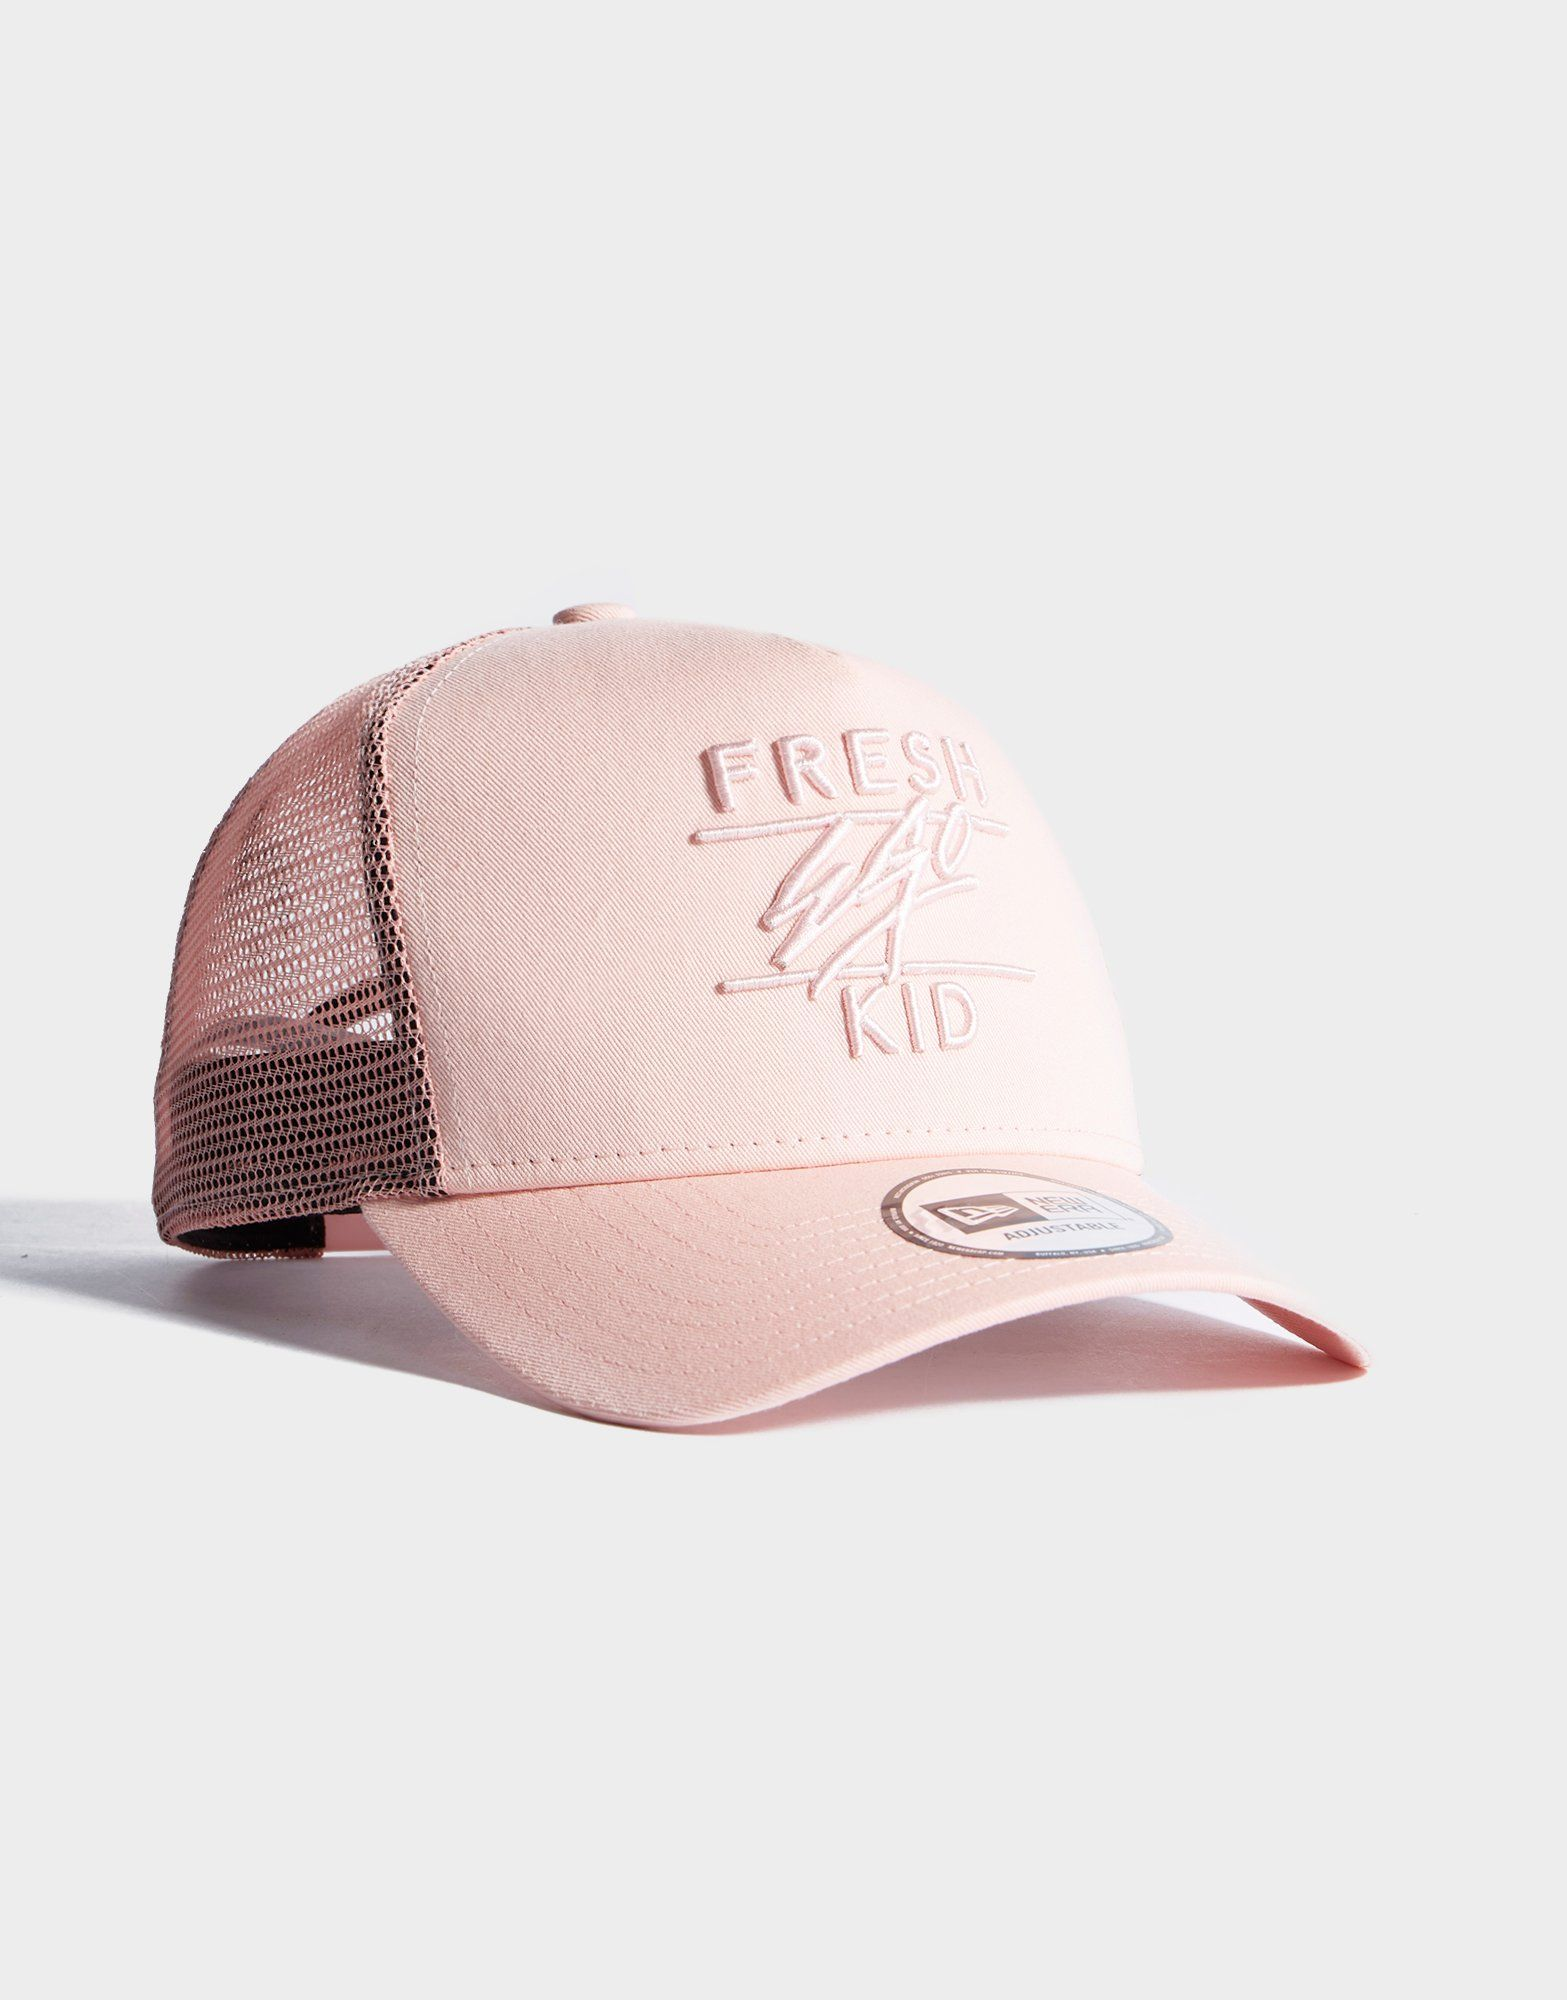 Fresh Ego Kid Casquette